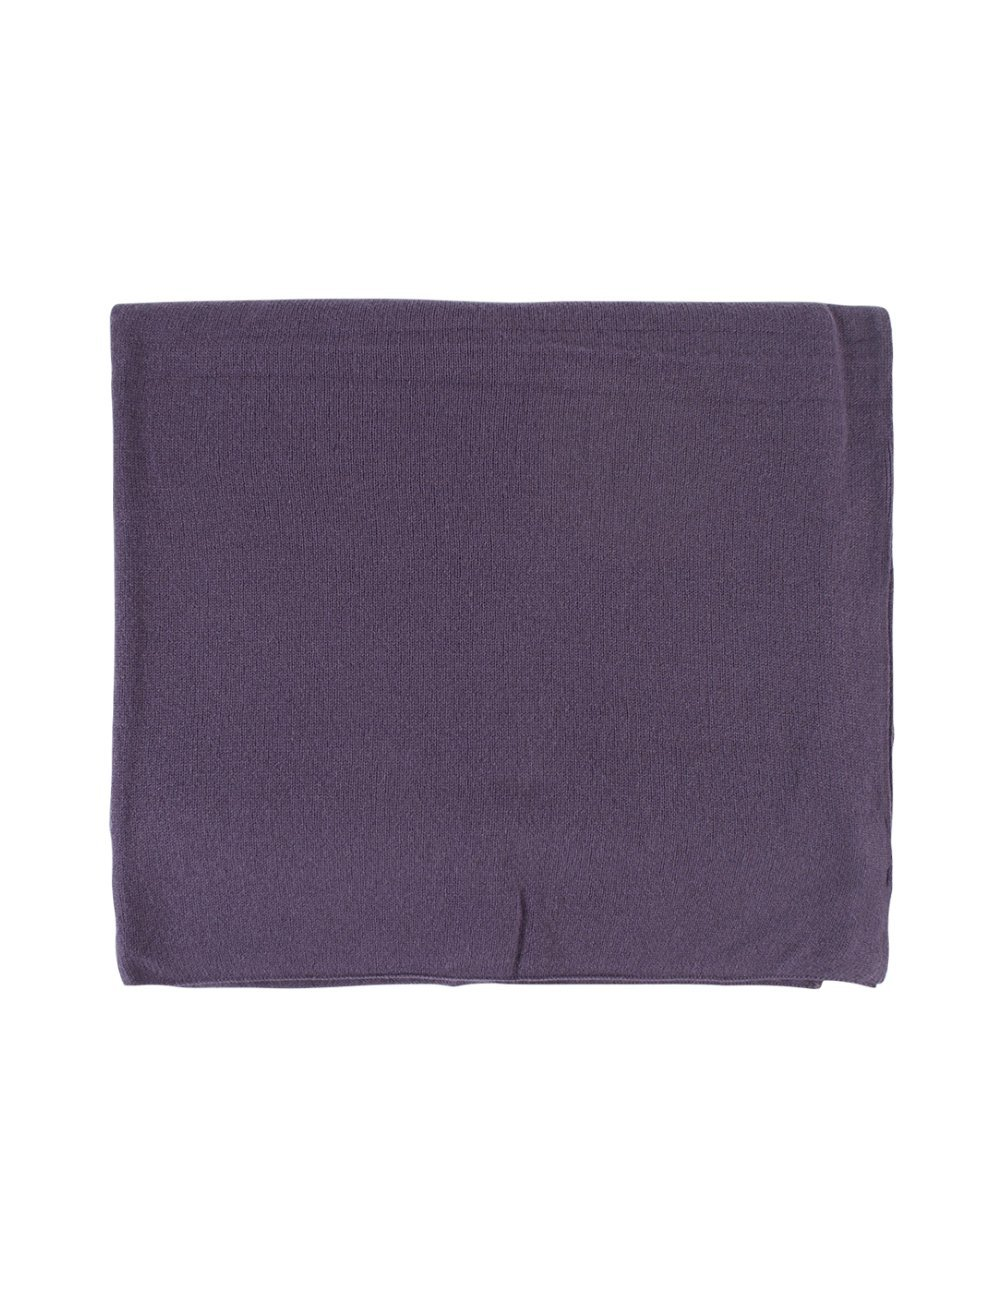 Great and British Knitwear Ladies 100 Percent Cashmere Plain Fine Knit Wrap. Made In Scotland-Plum